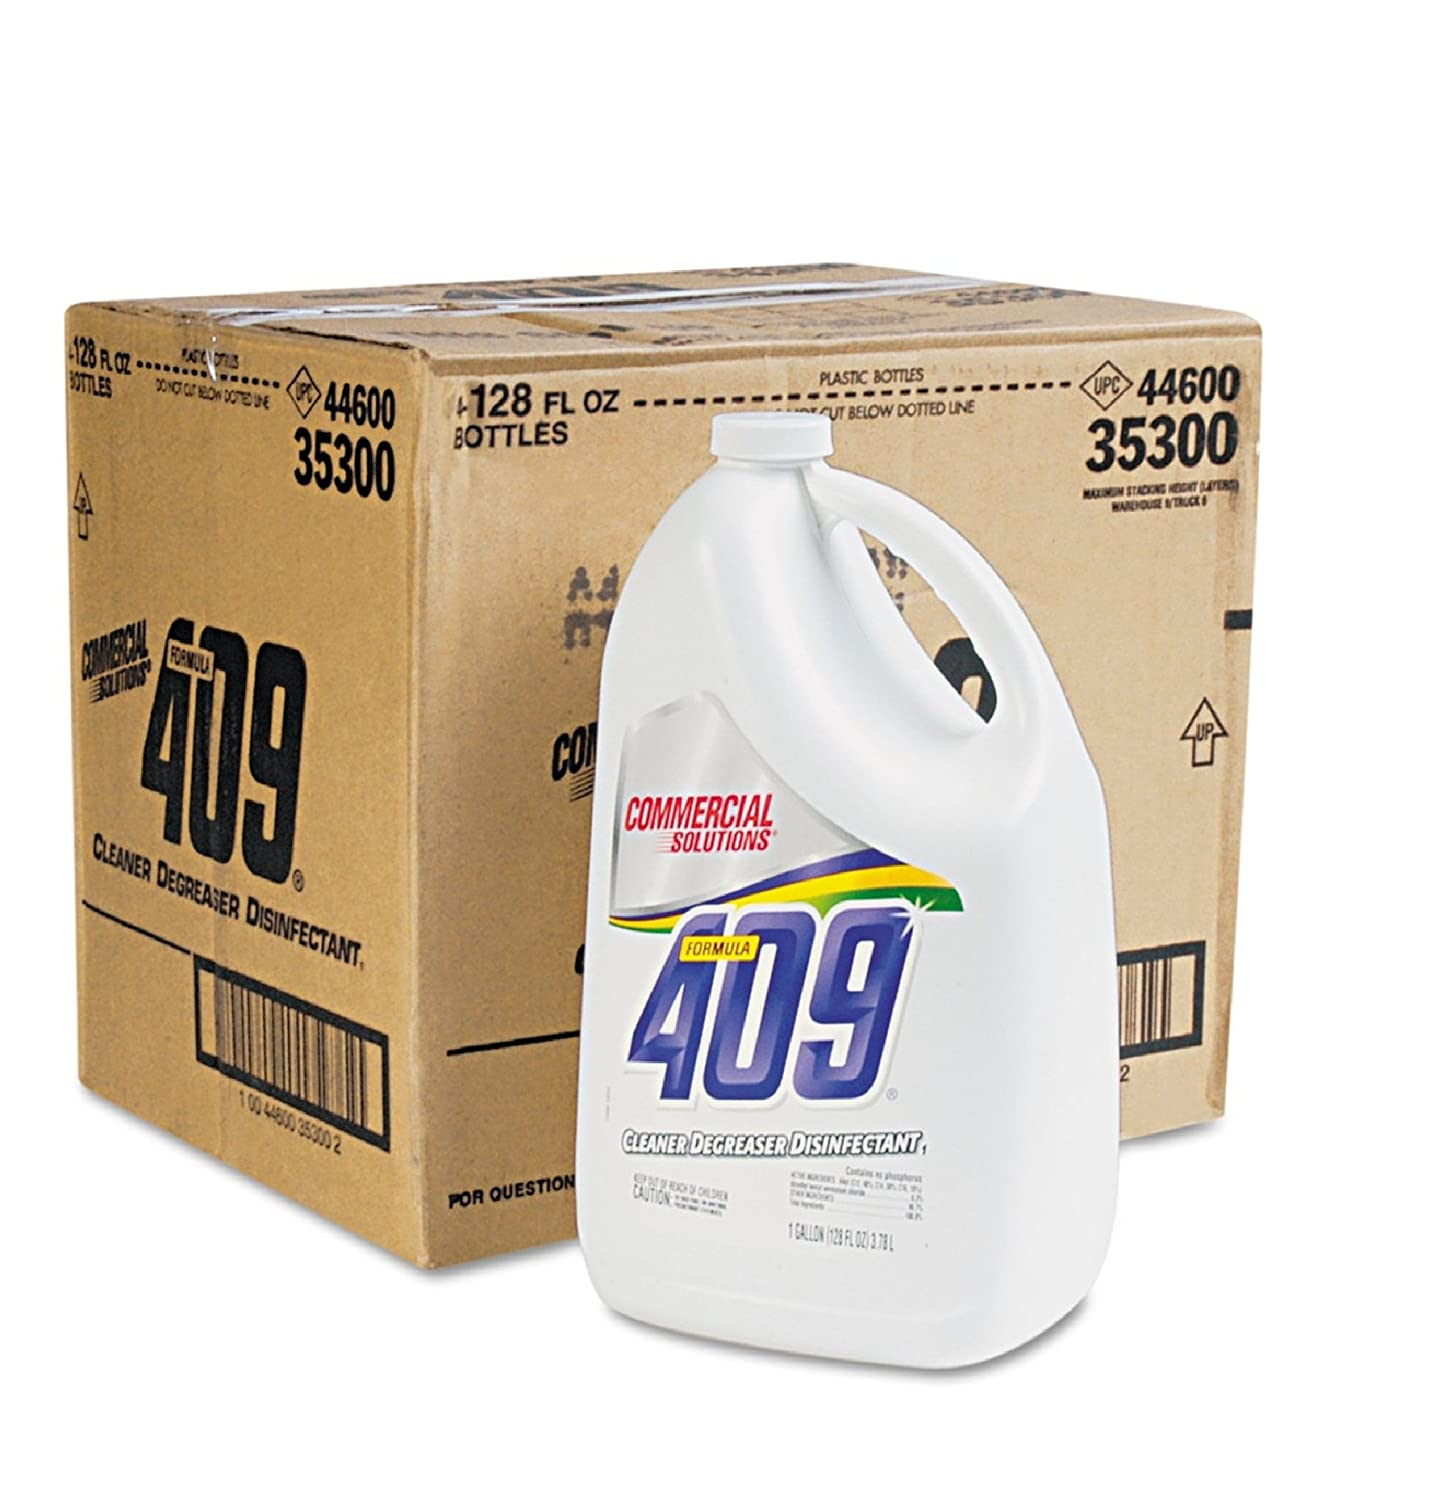 cox35300ct – Cleaner Degreaser Disinfectant B002WP8T72